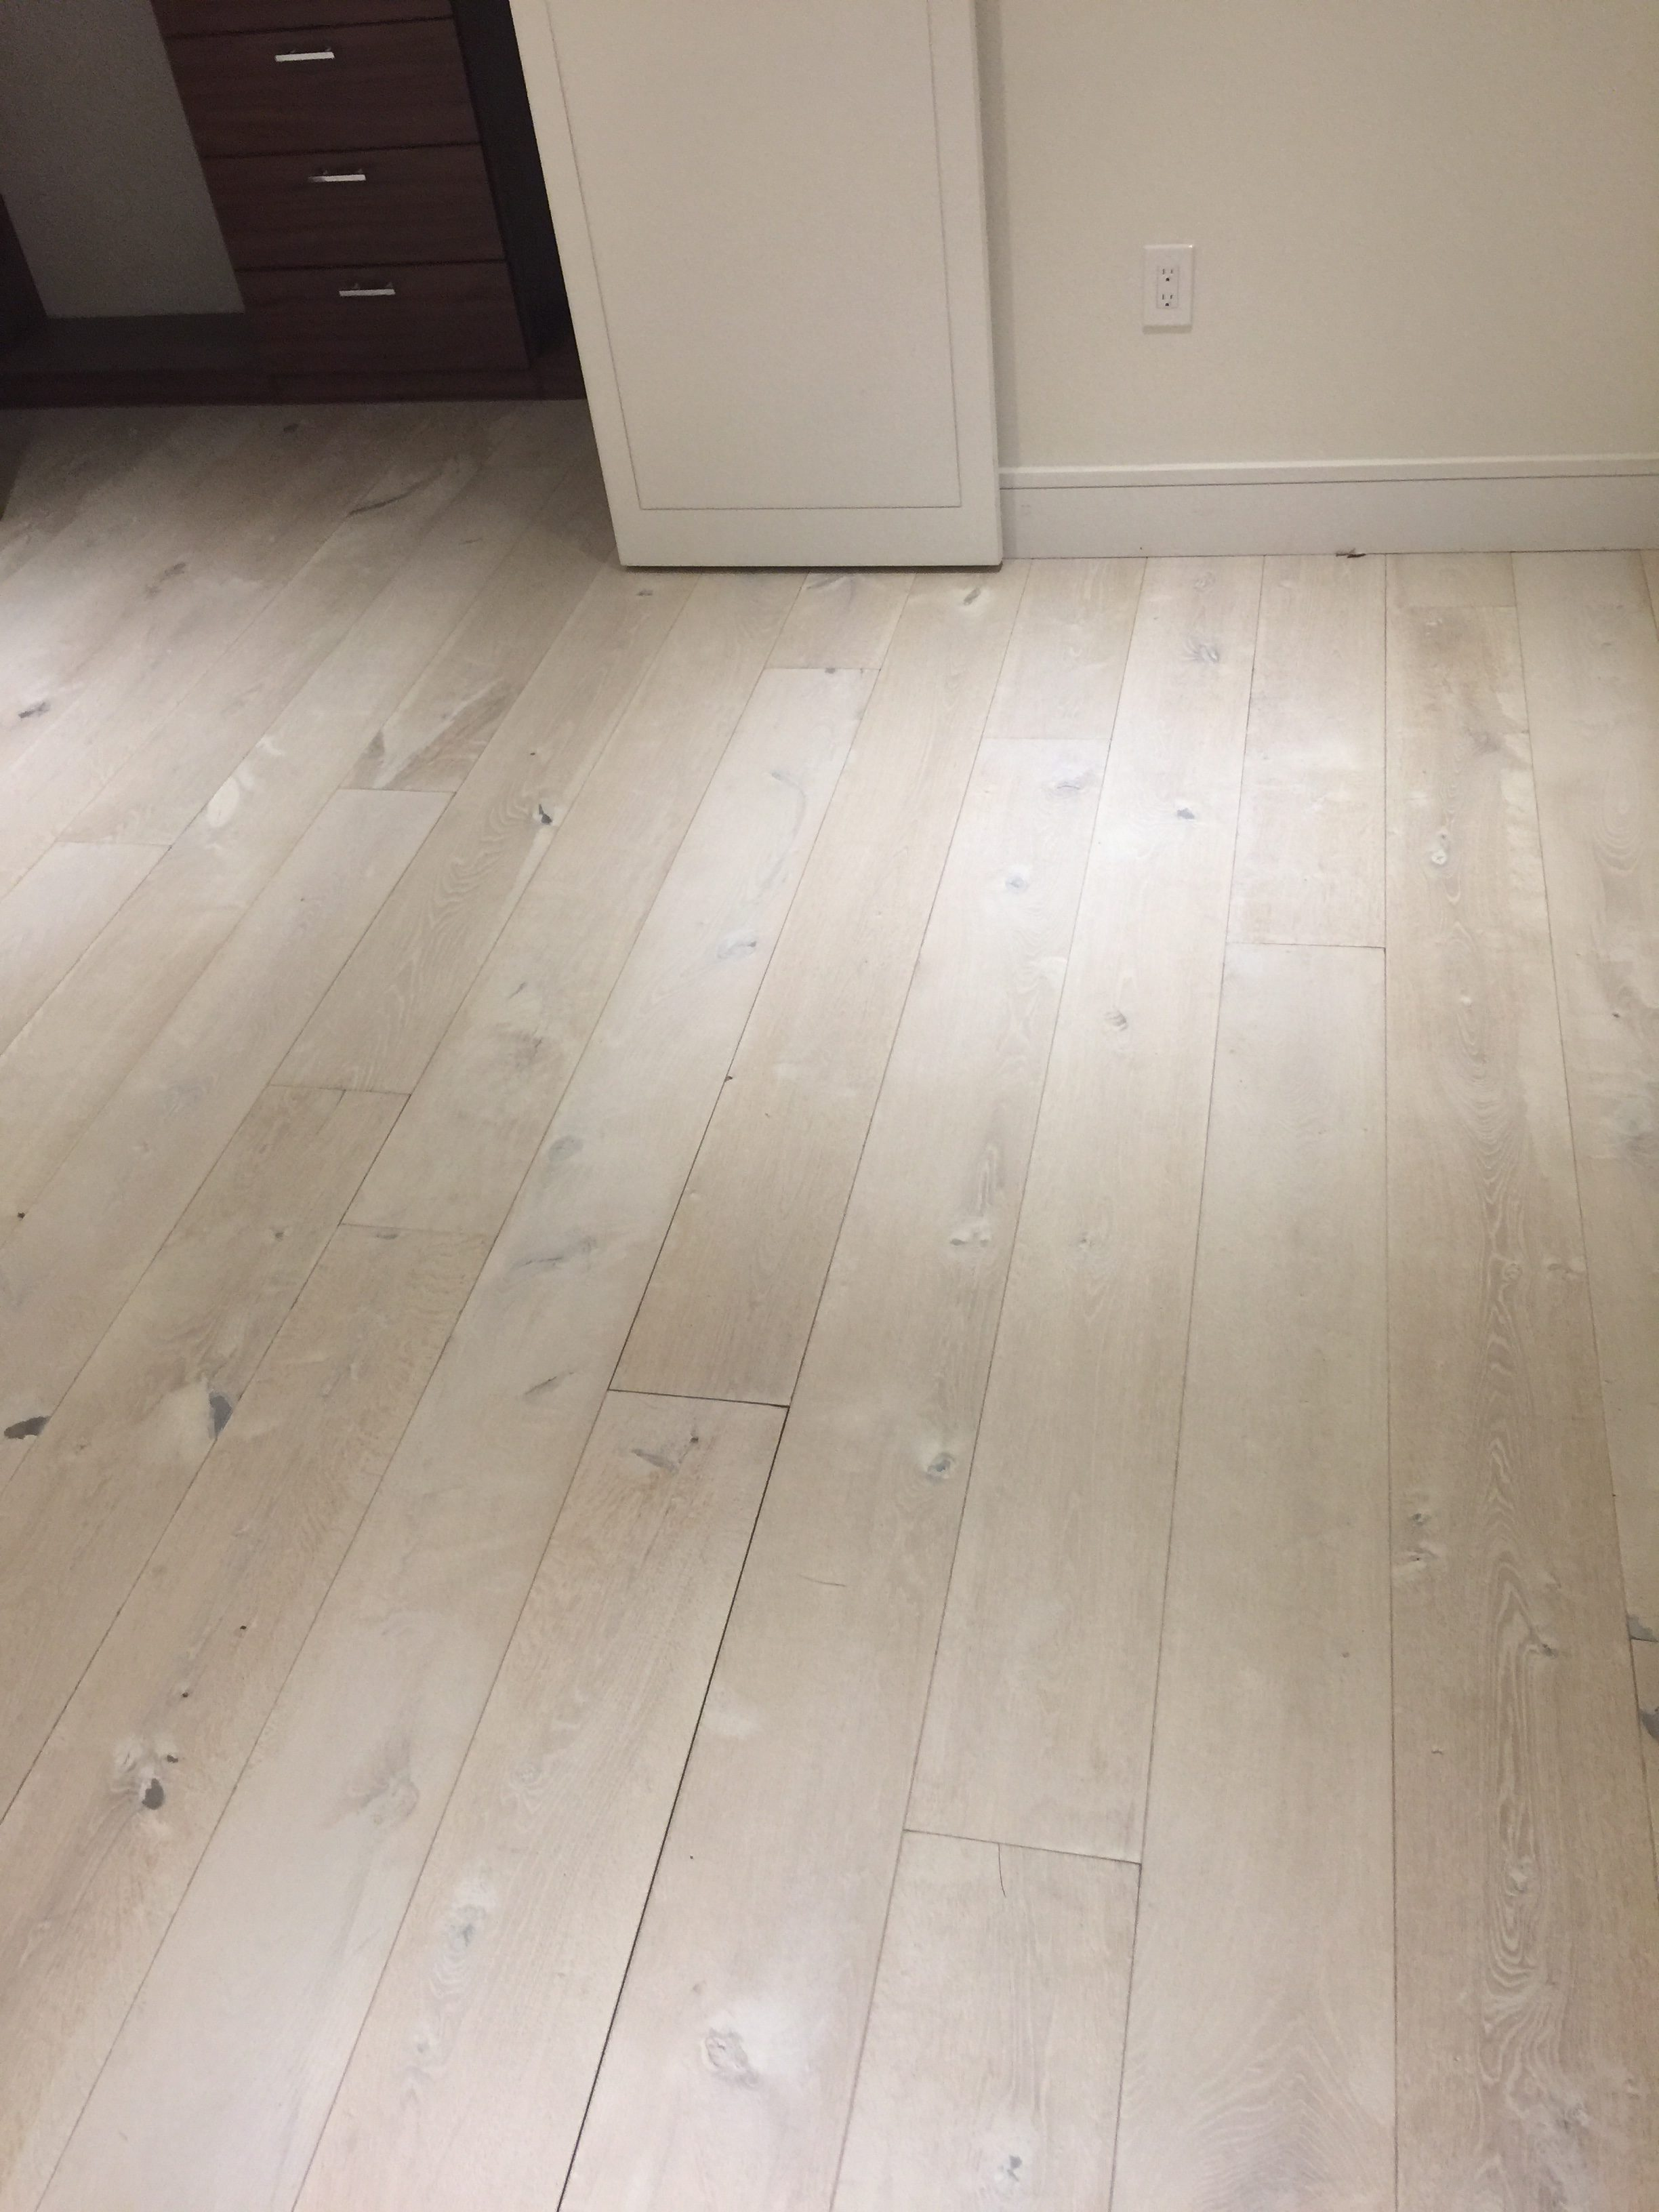 This Type Of Flooring Is Also Very Durable Making It Great For Al Properties And Commercial Es Easy To Install So You Can Get Your Gorgeous